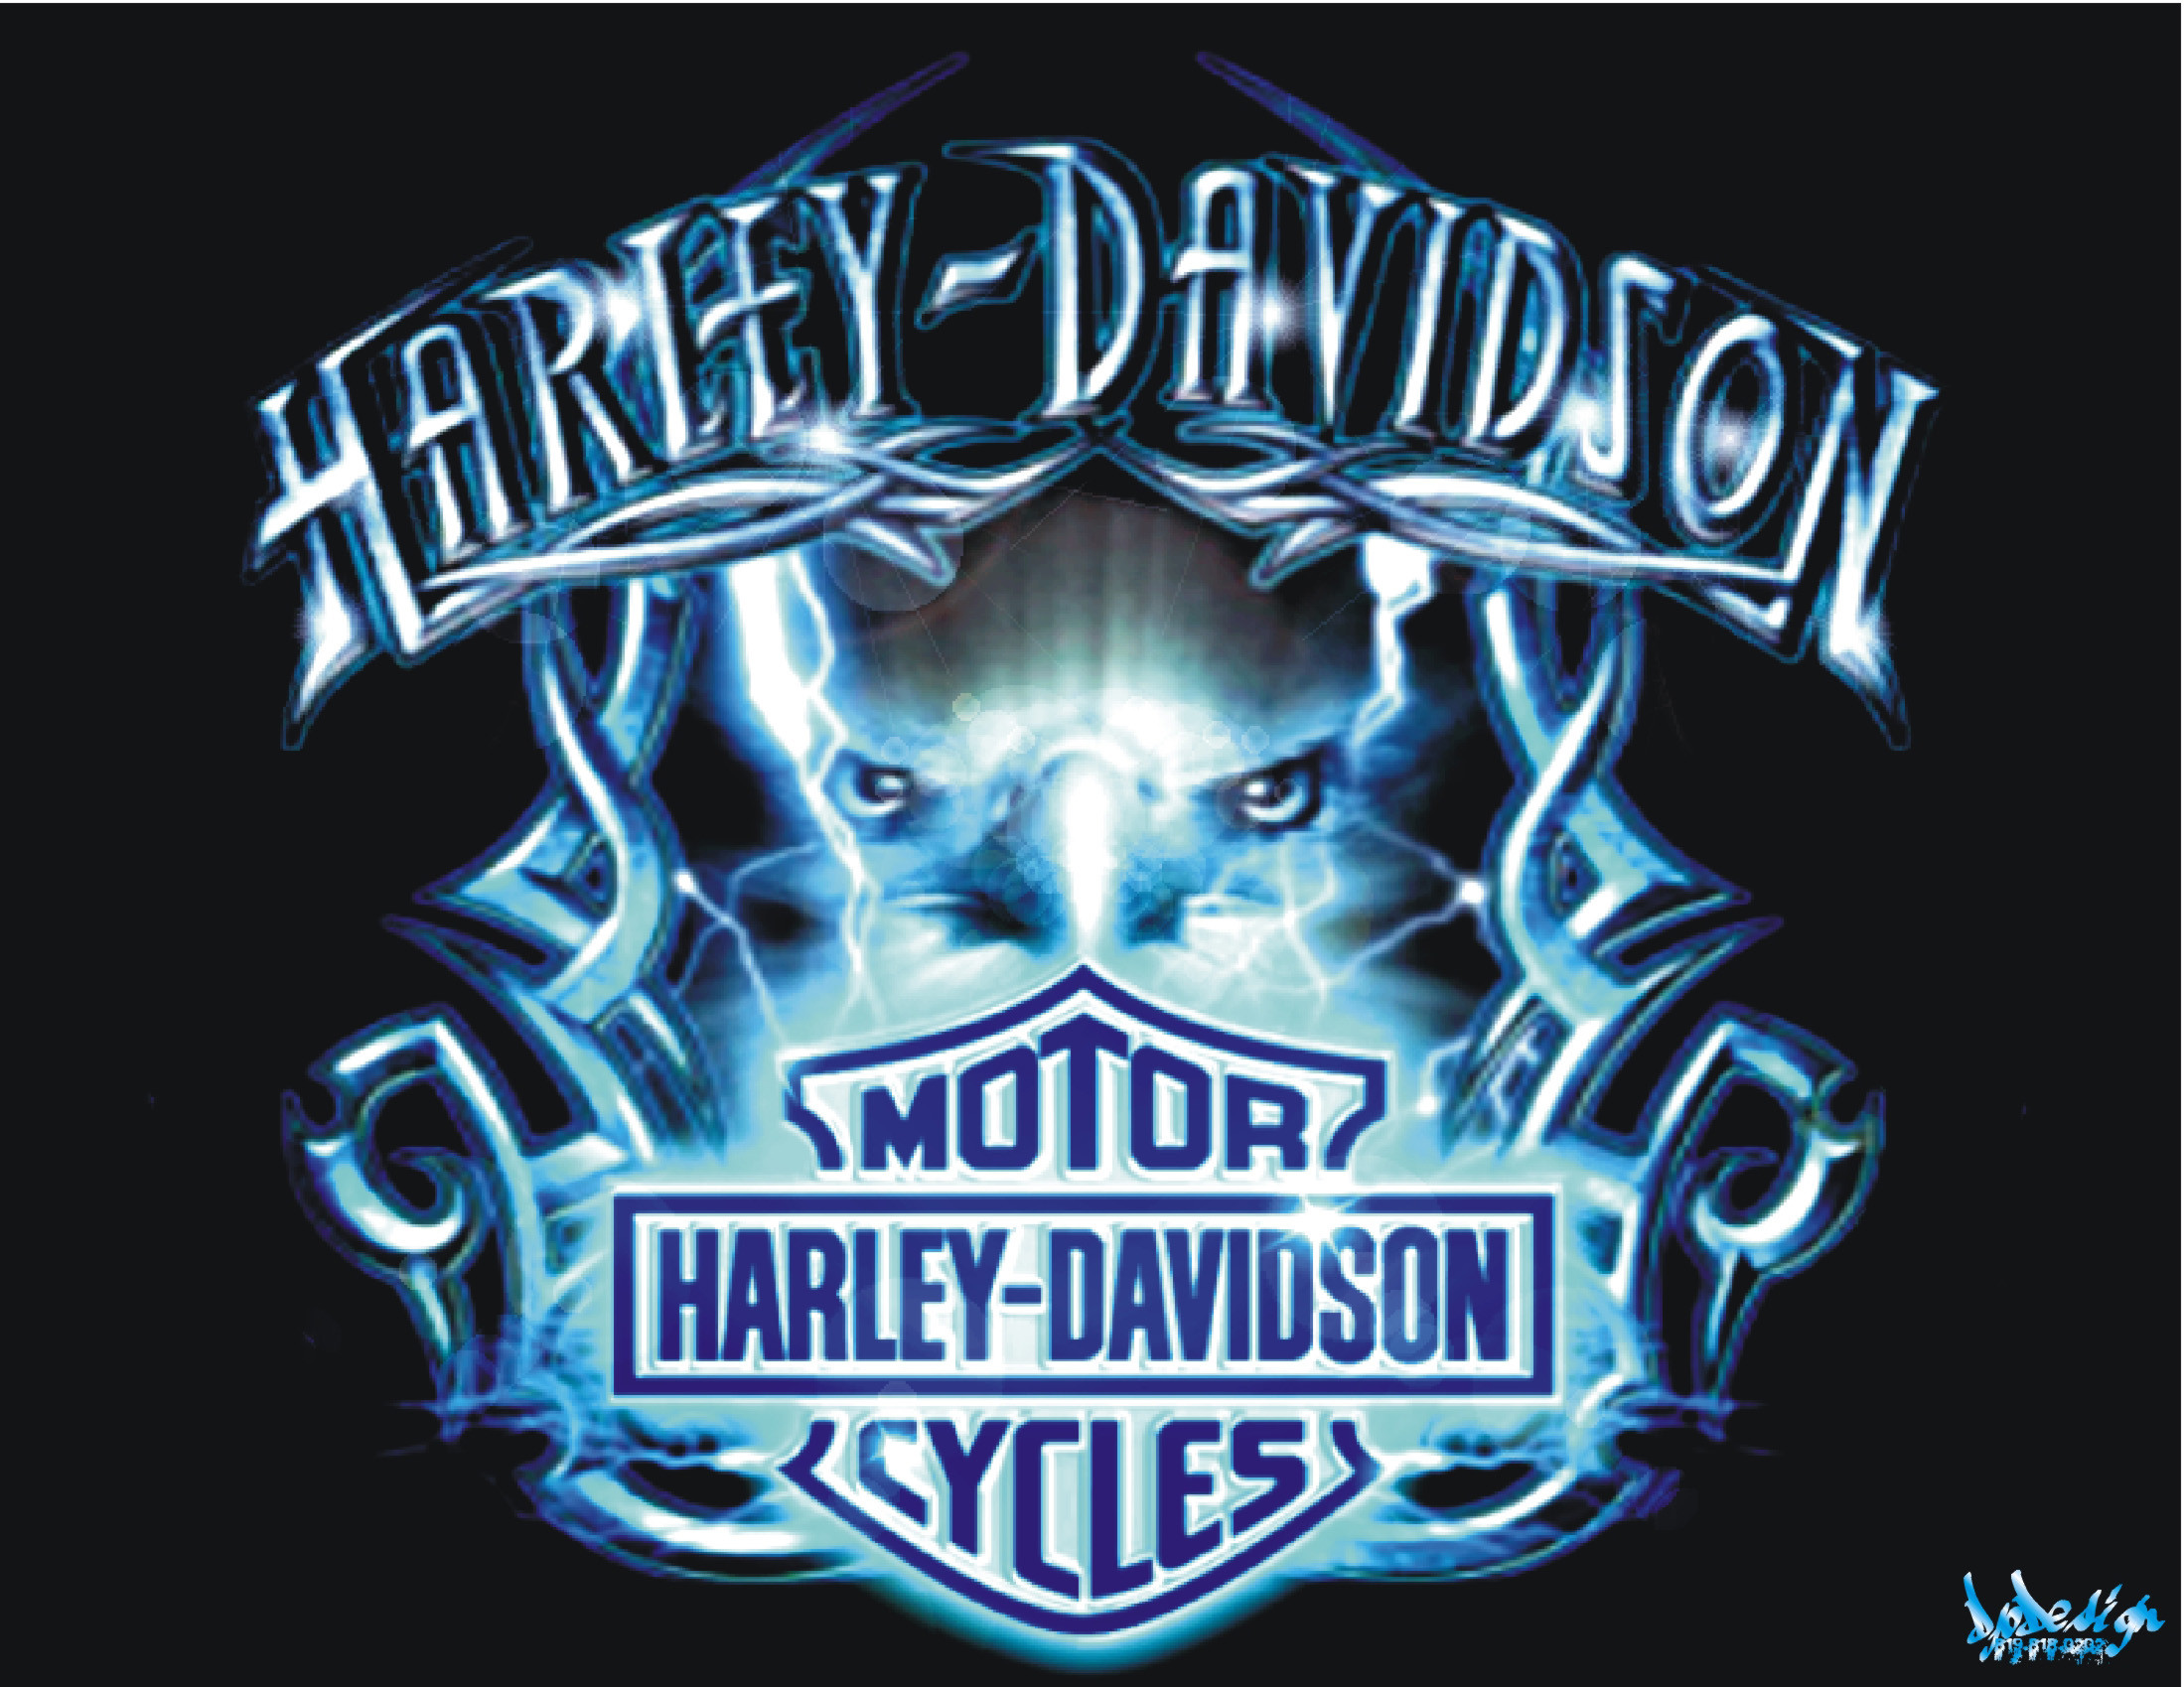 Harley davidson wallpaper hd 74 images 1920x1200 harley davidson bikes wallpapers hd free download 13 voltagebd Images